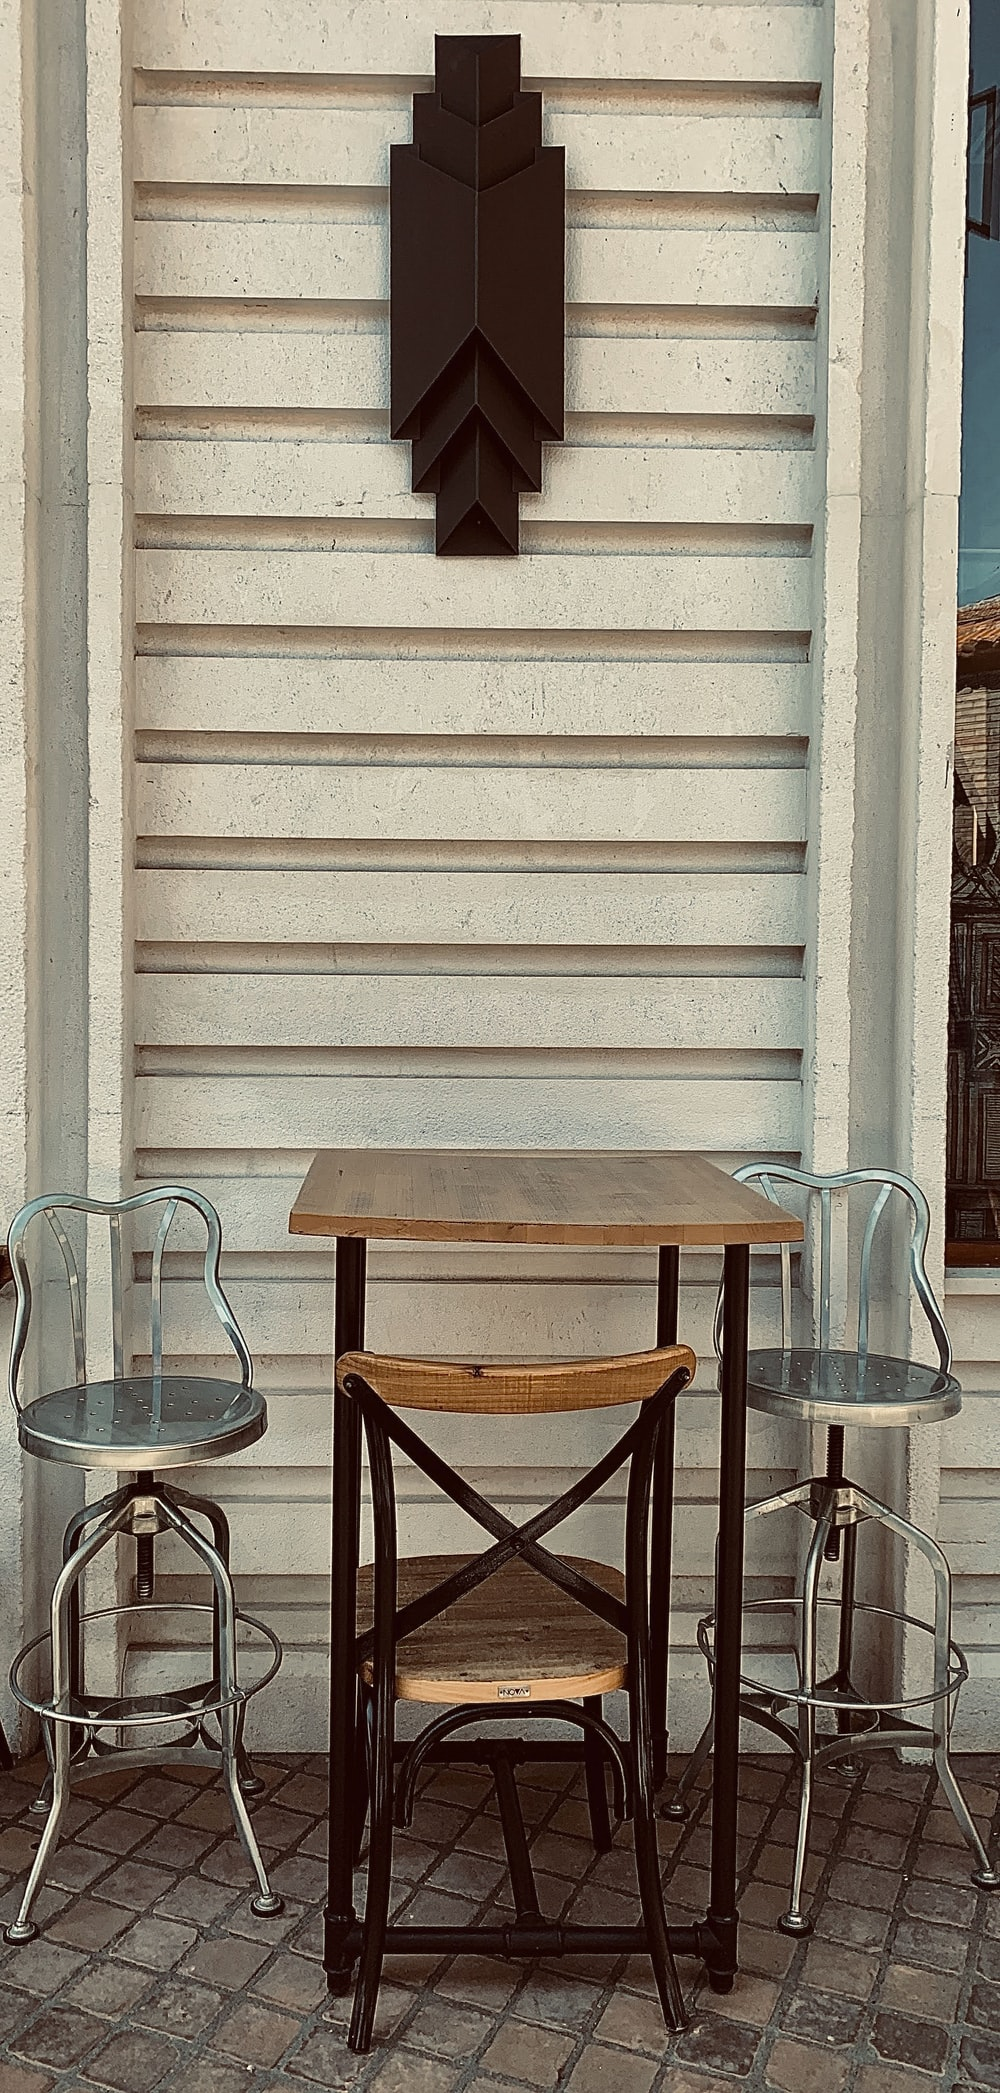 stainless steel framed brown wooden chair